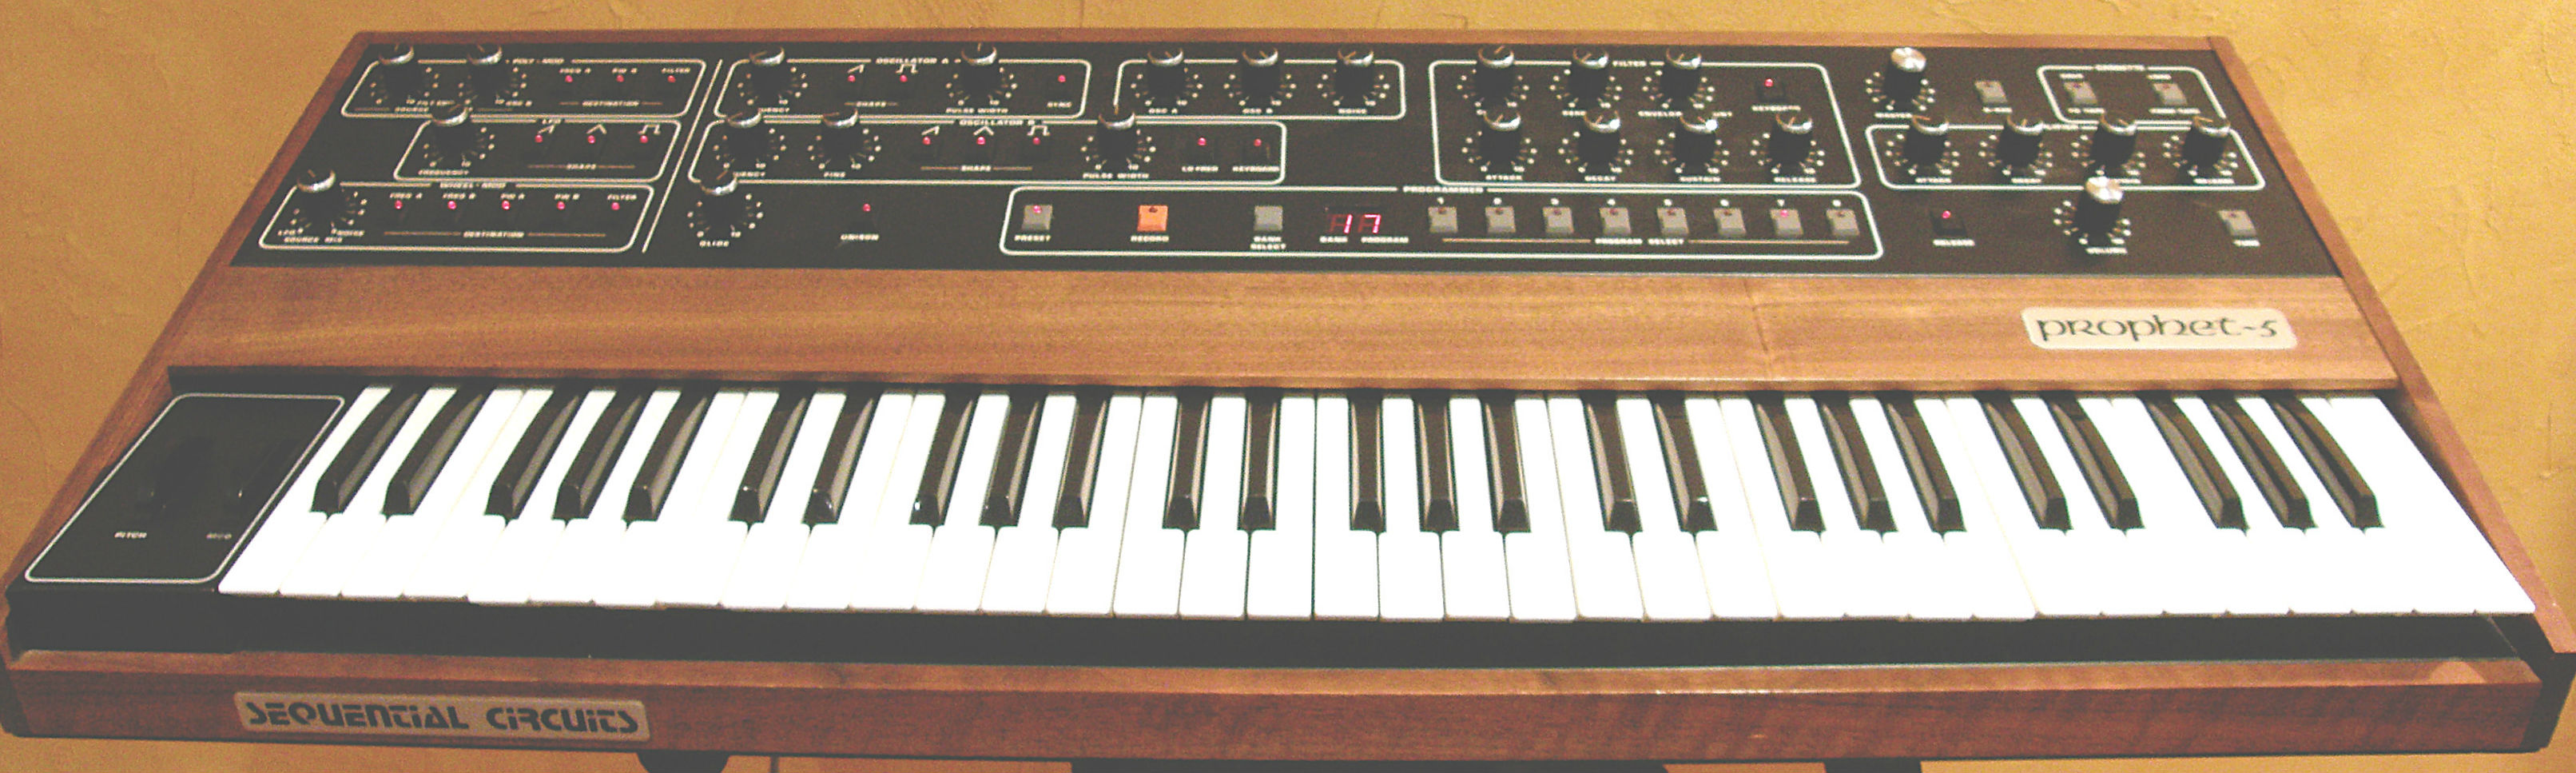 sequential-circuits-prophet-5-313098